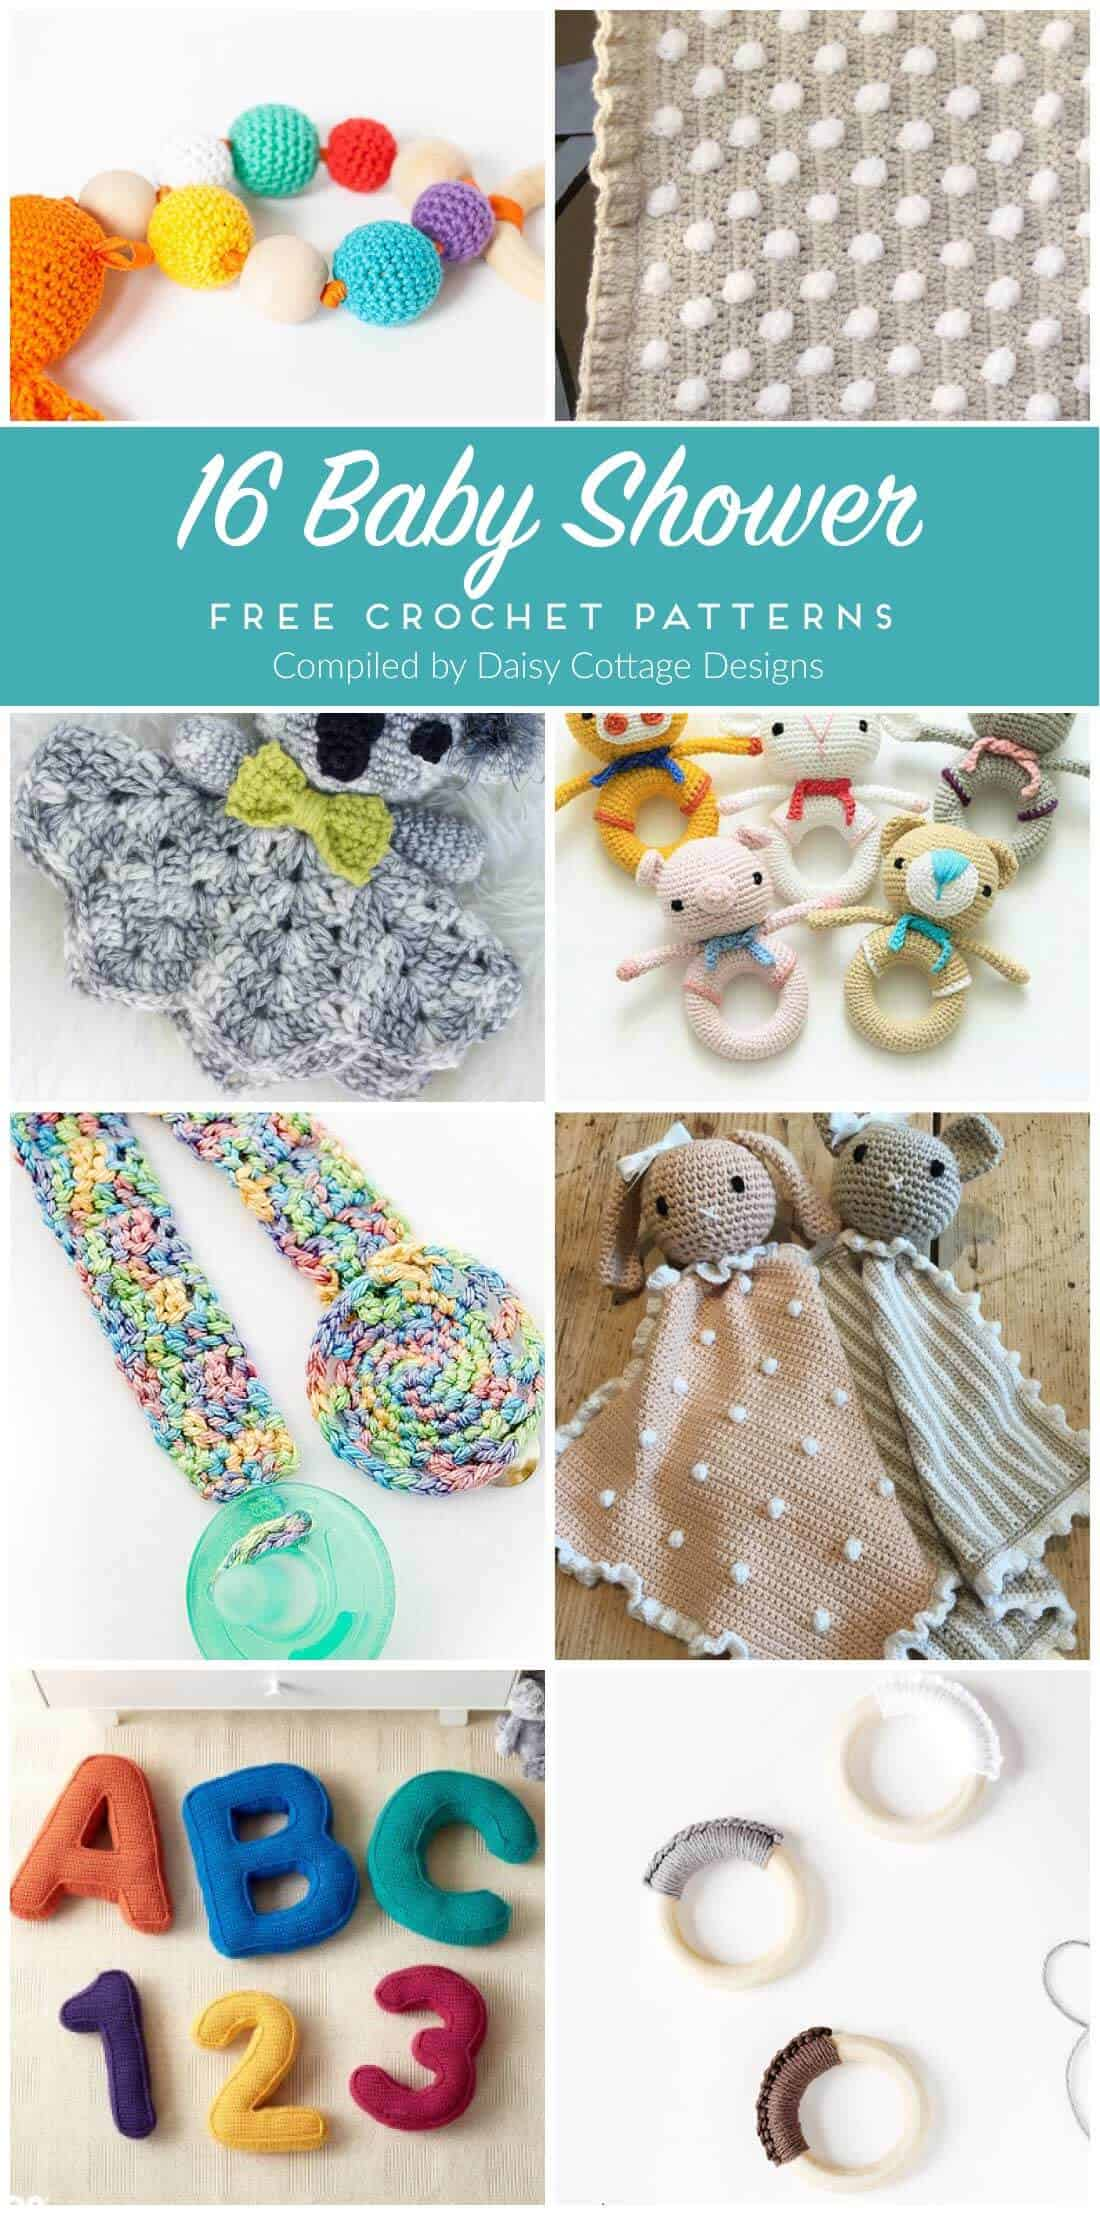 free crochet patterns | baby crochet patterns | crochet patterns for baby | Use one of these adorable crochet patterns to make something for that upcoming baby shower. These free patterns make adorable gifts that will be treasured for a lifetime.